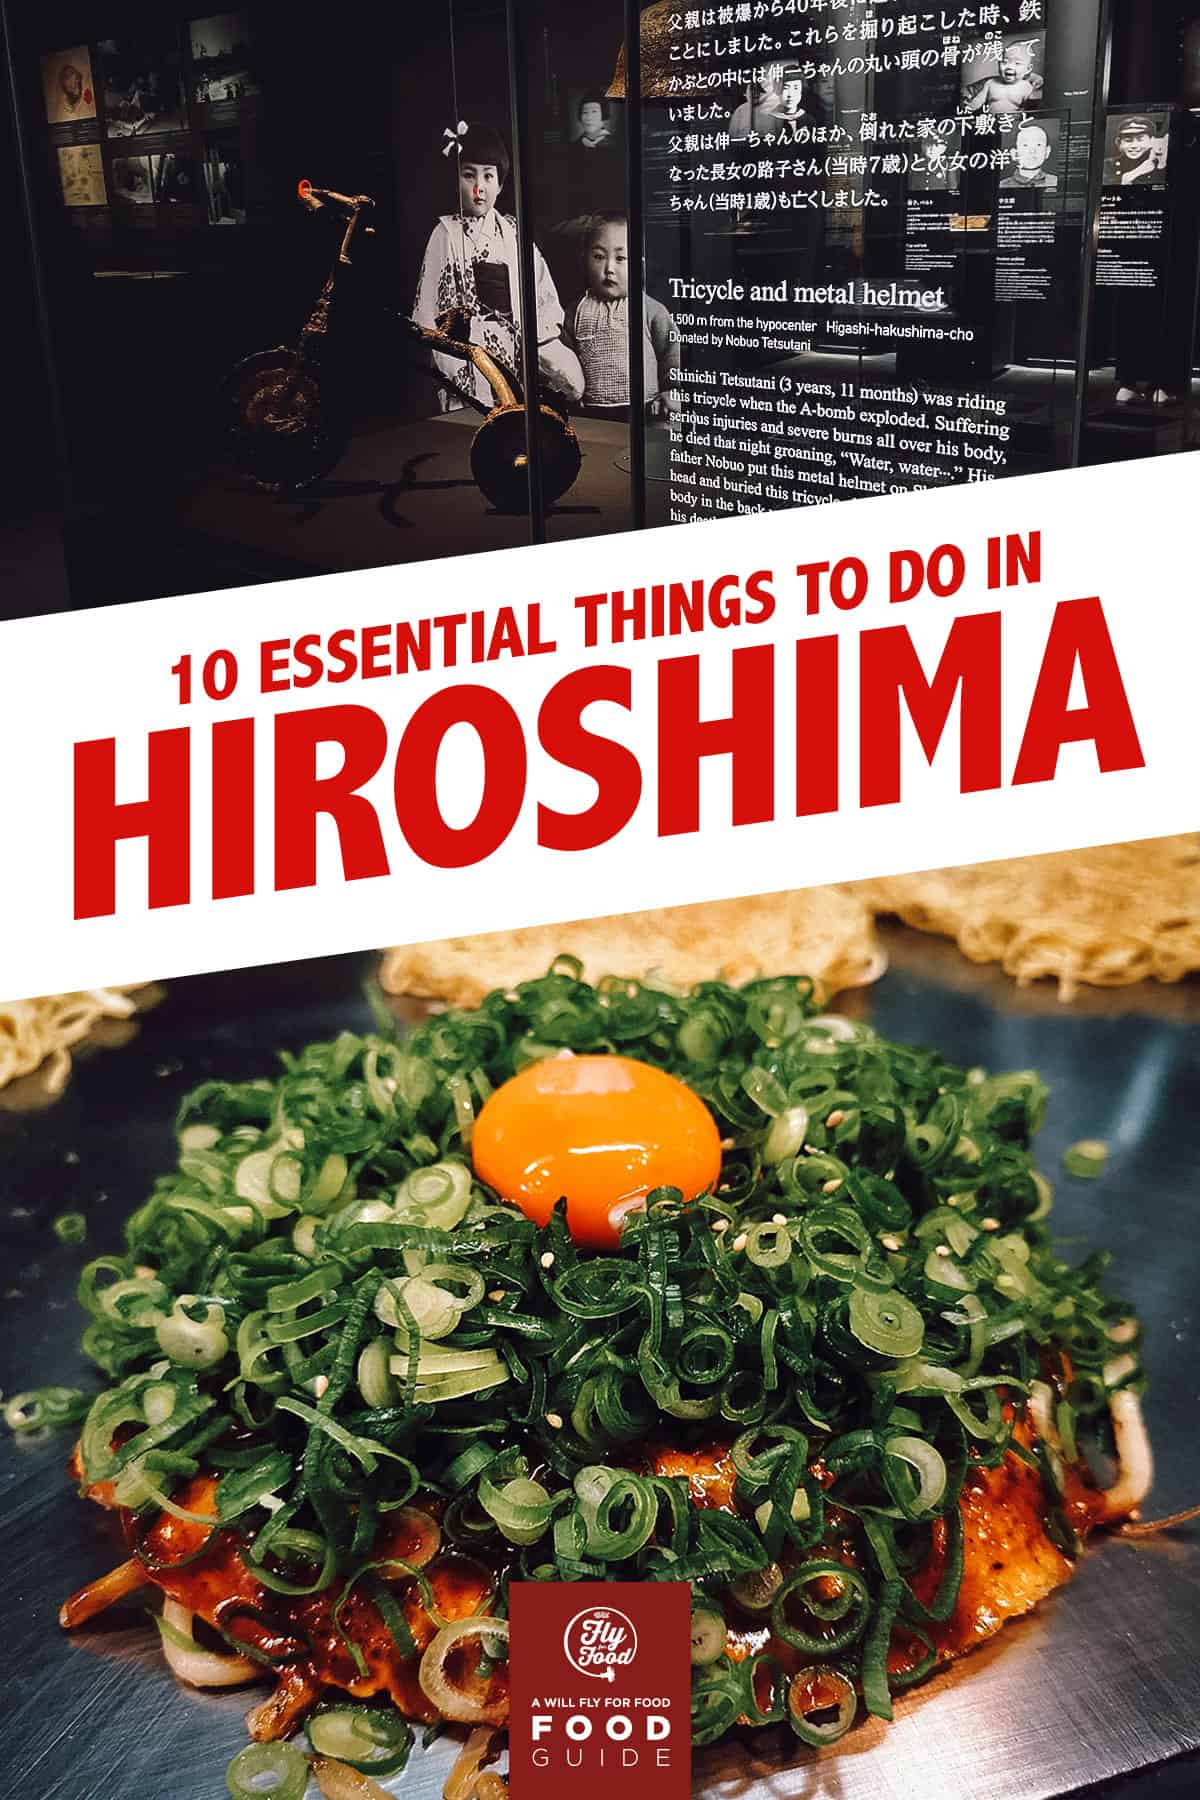 Hirsohima Peace Memorial Museum and okonomiyaki